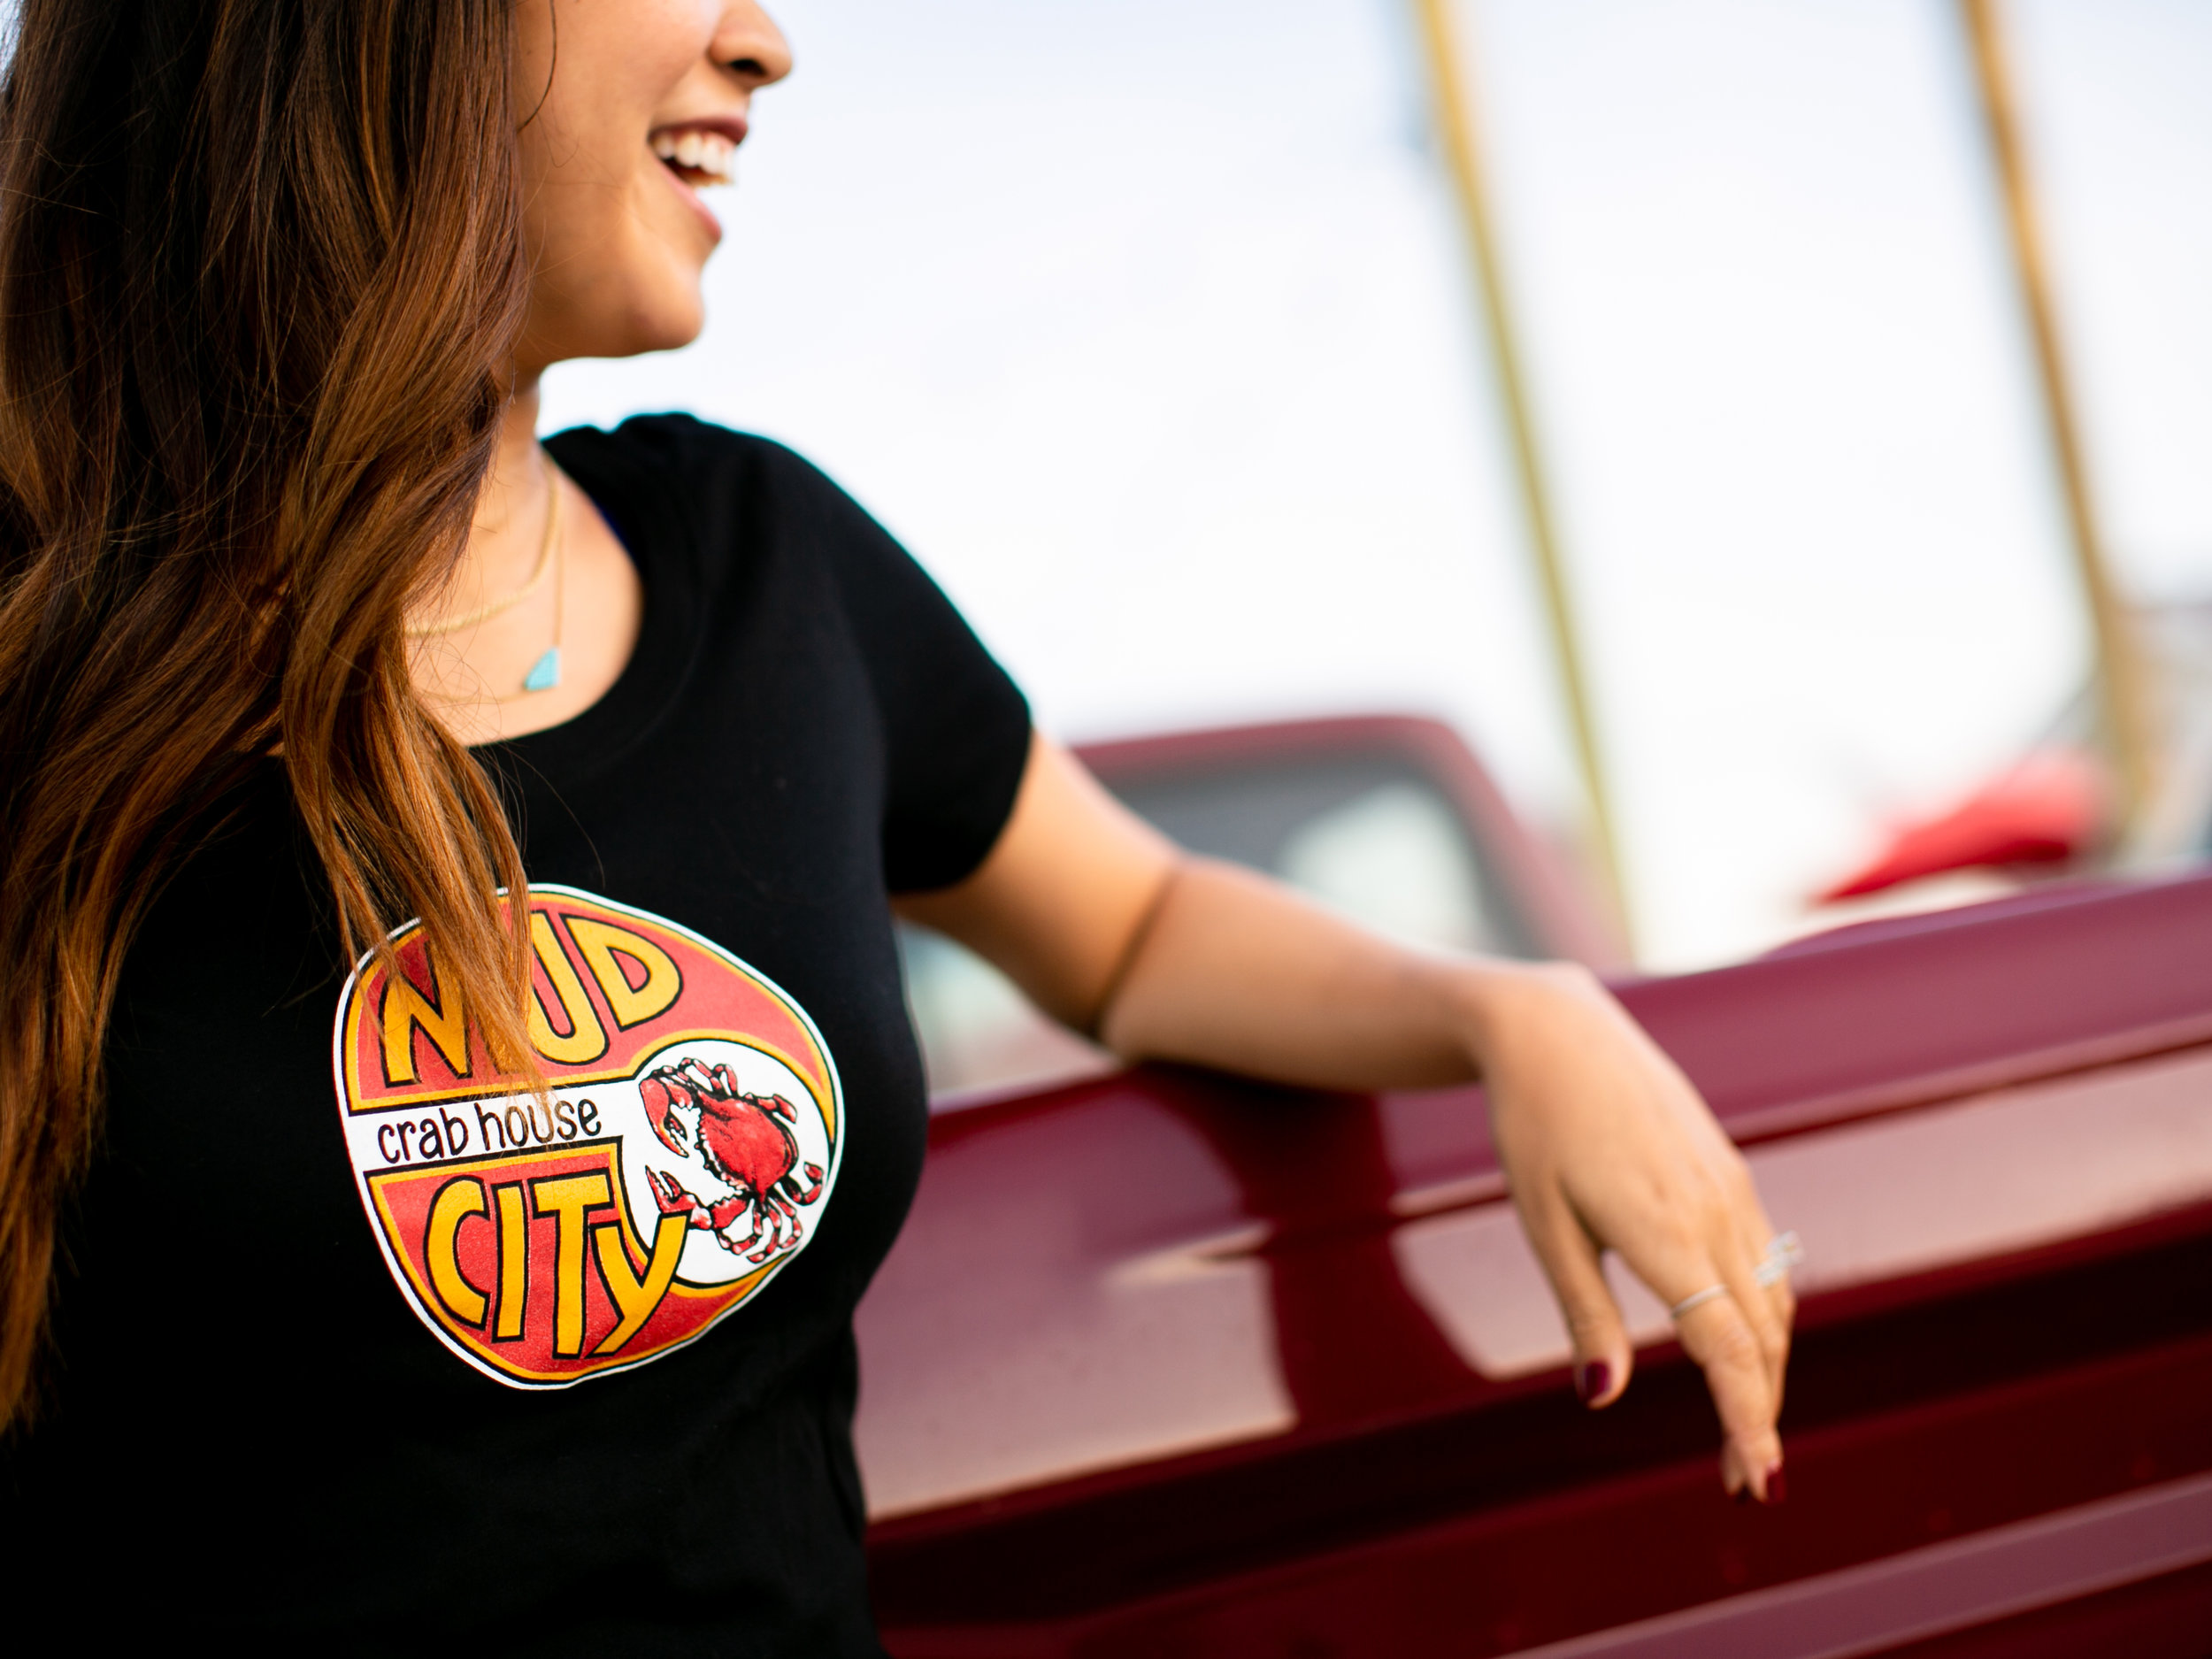 Mud City shirts are in stock at our Tide Table online store. Photo: Ryan Johnson